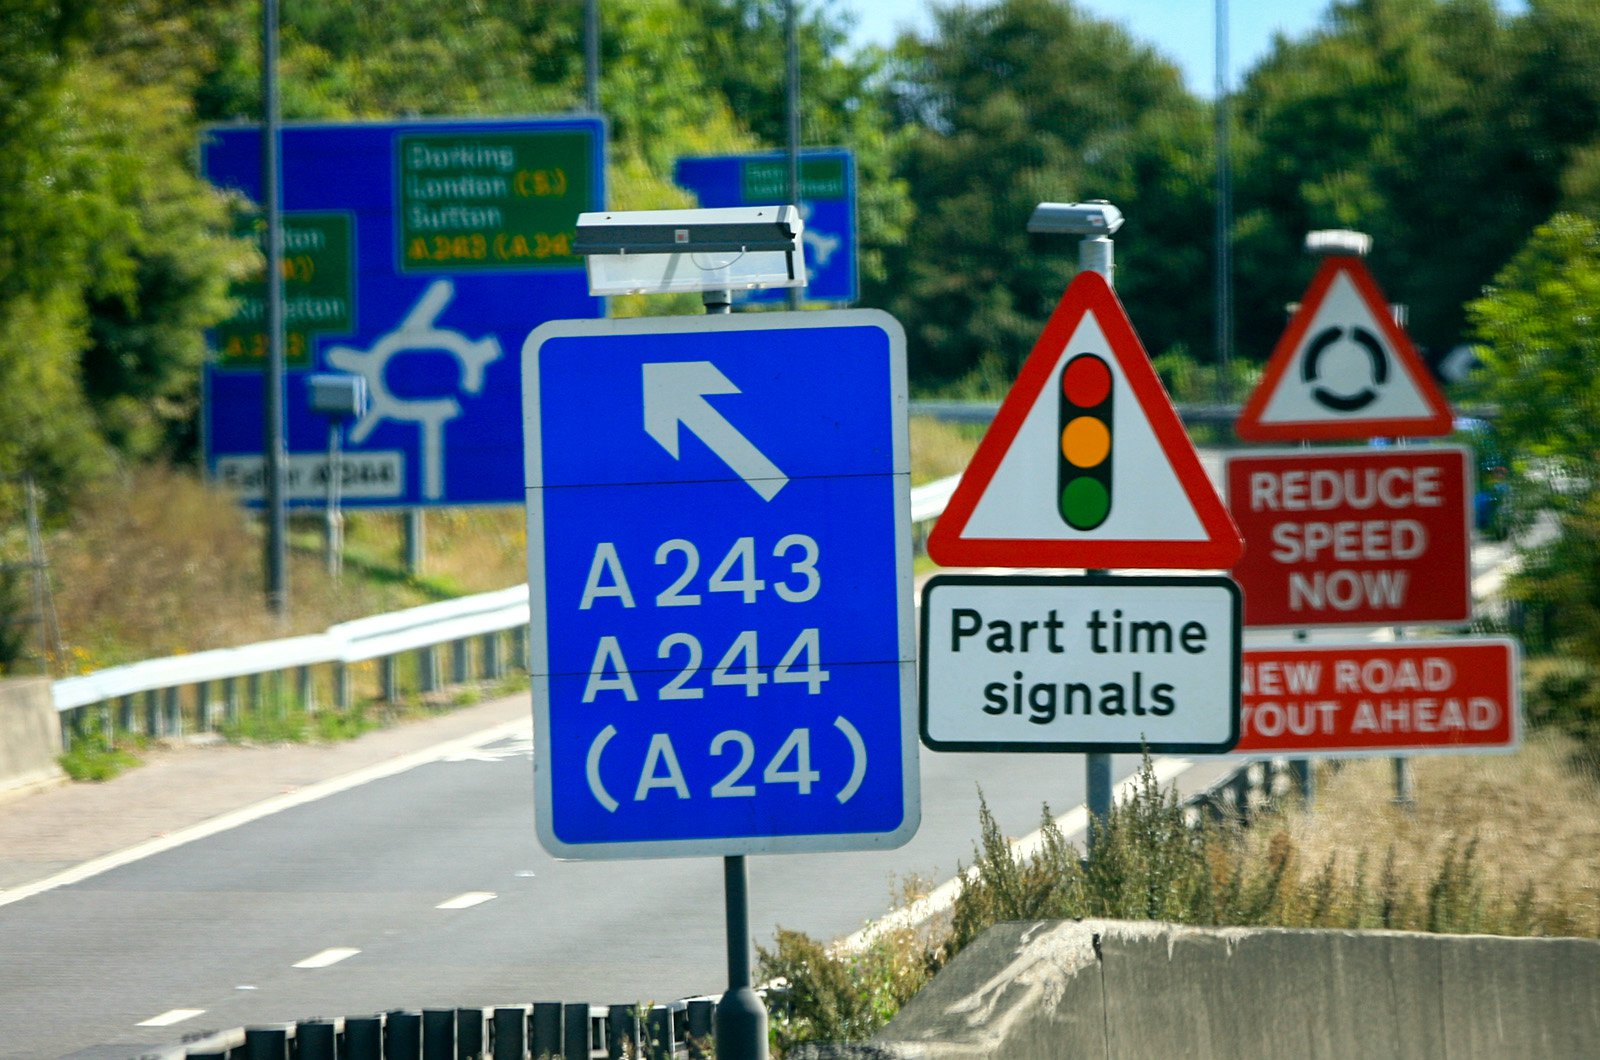 So you think you know what the UK's road signs mean, but do you really?